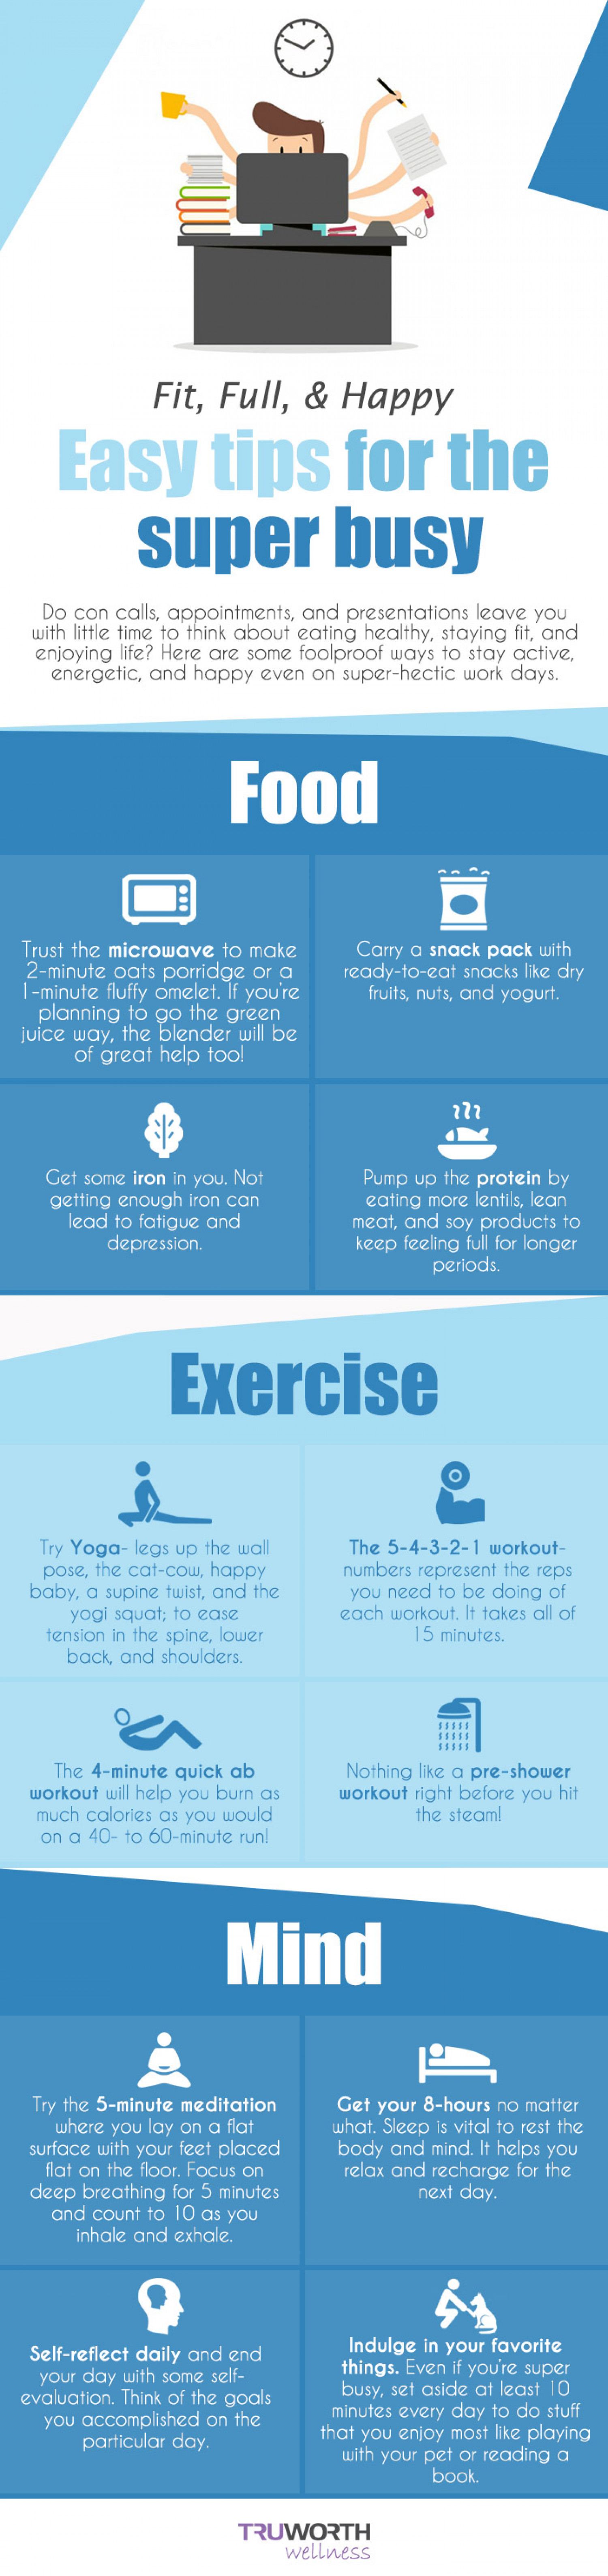 Fit, Full, & Happy: Easy tips for the super busy Infographic